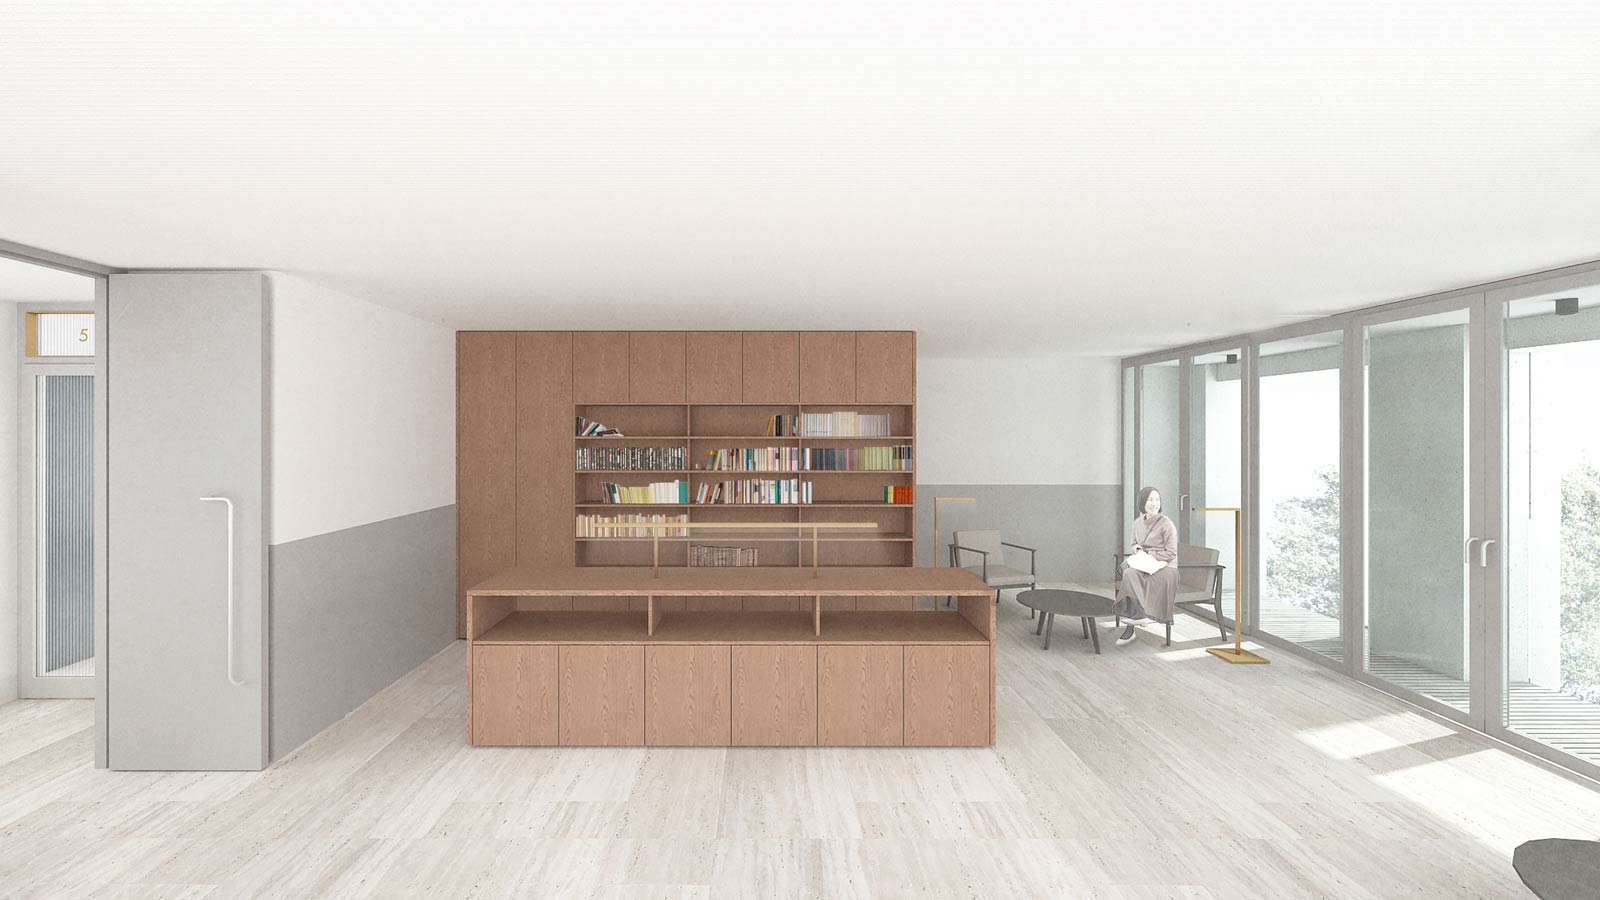 collective lobby on the fifth floor with library of Werkspoor op Oostenburg project by BETA architects Amsterdam Evert Klinkenberg Auguste Gus van Oppen